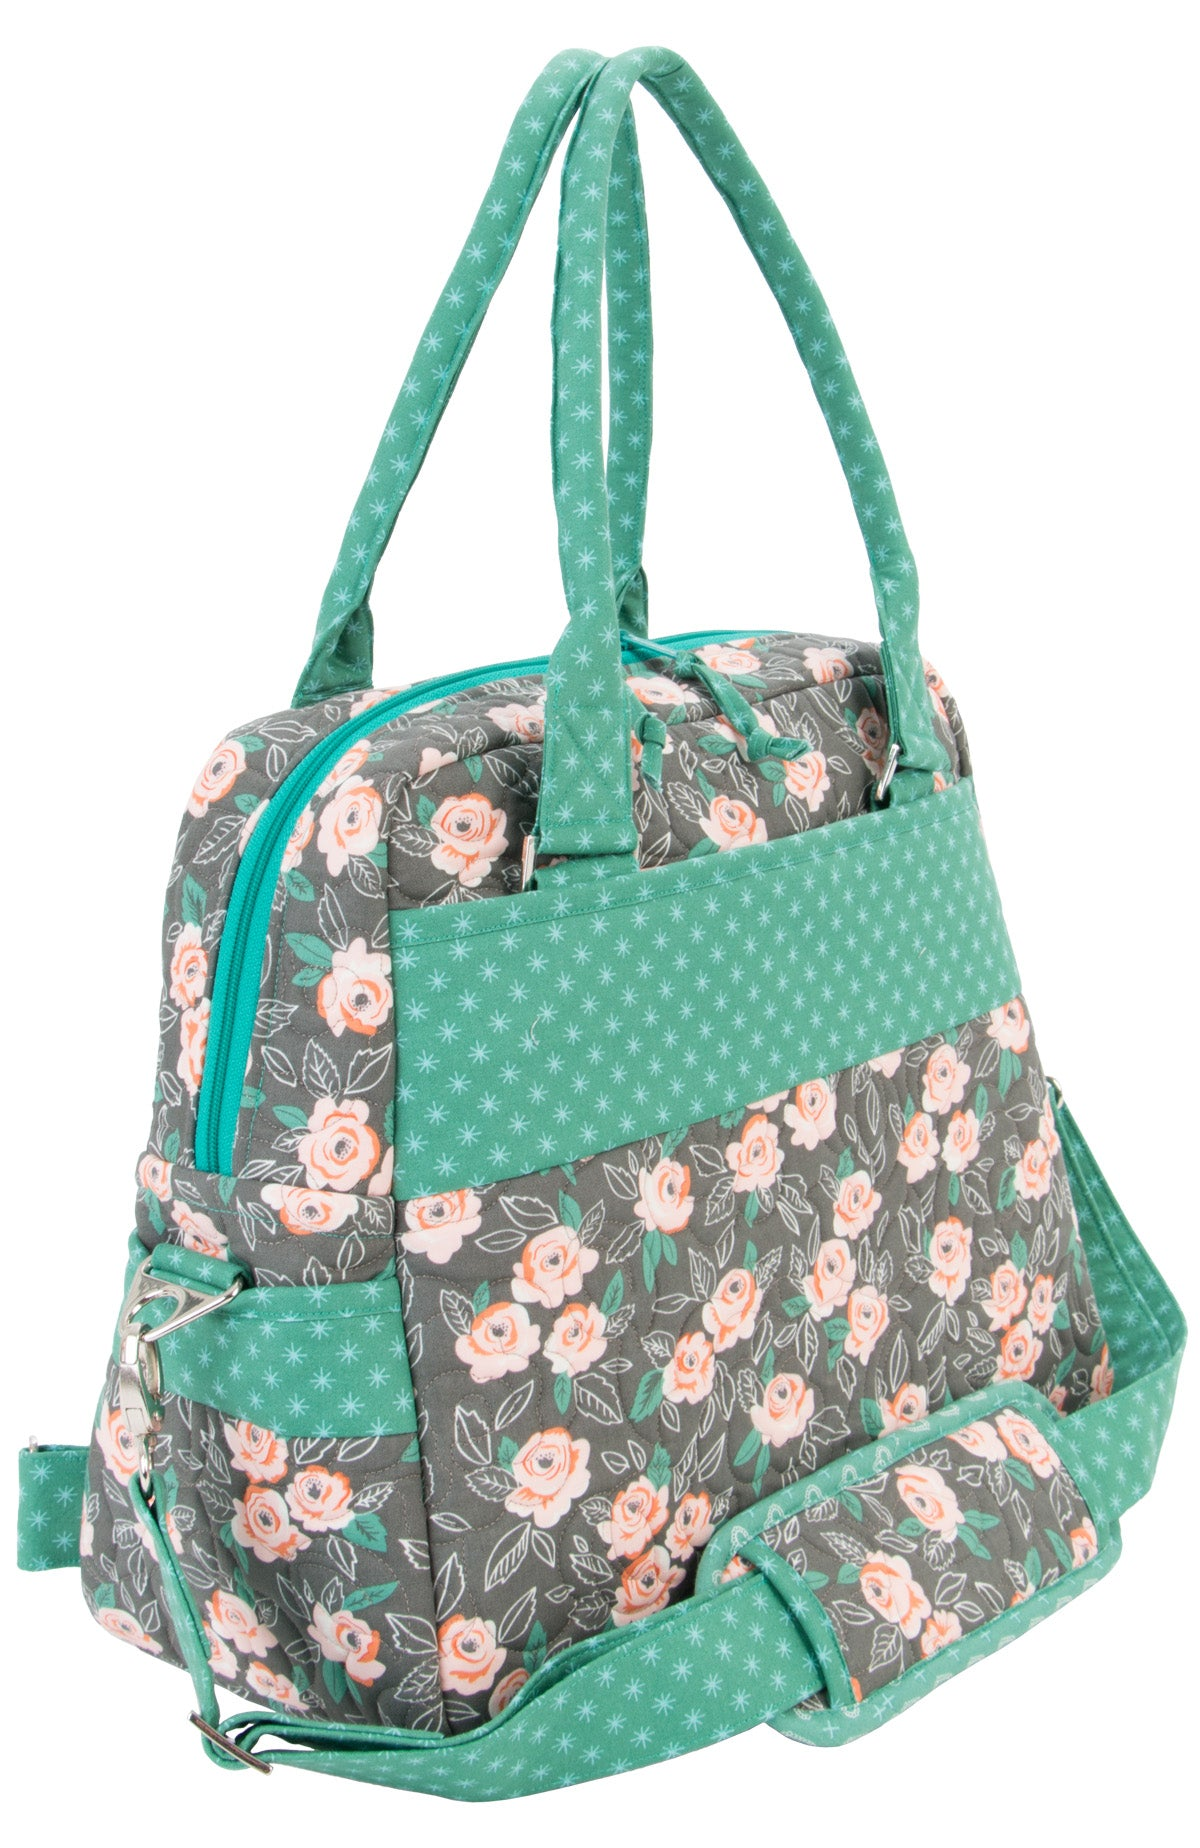 Every Day Every Way - Nappy Bag ~ By Annie